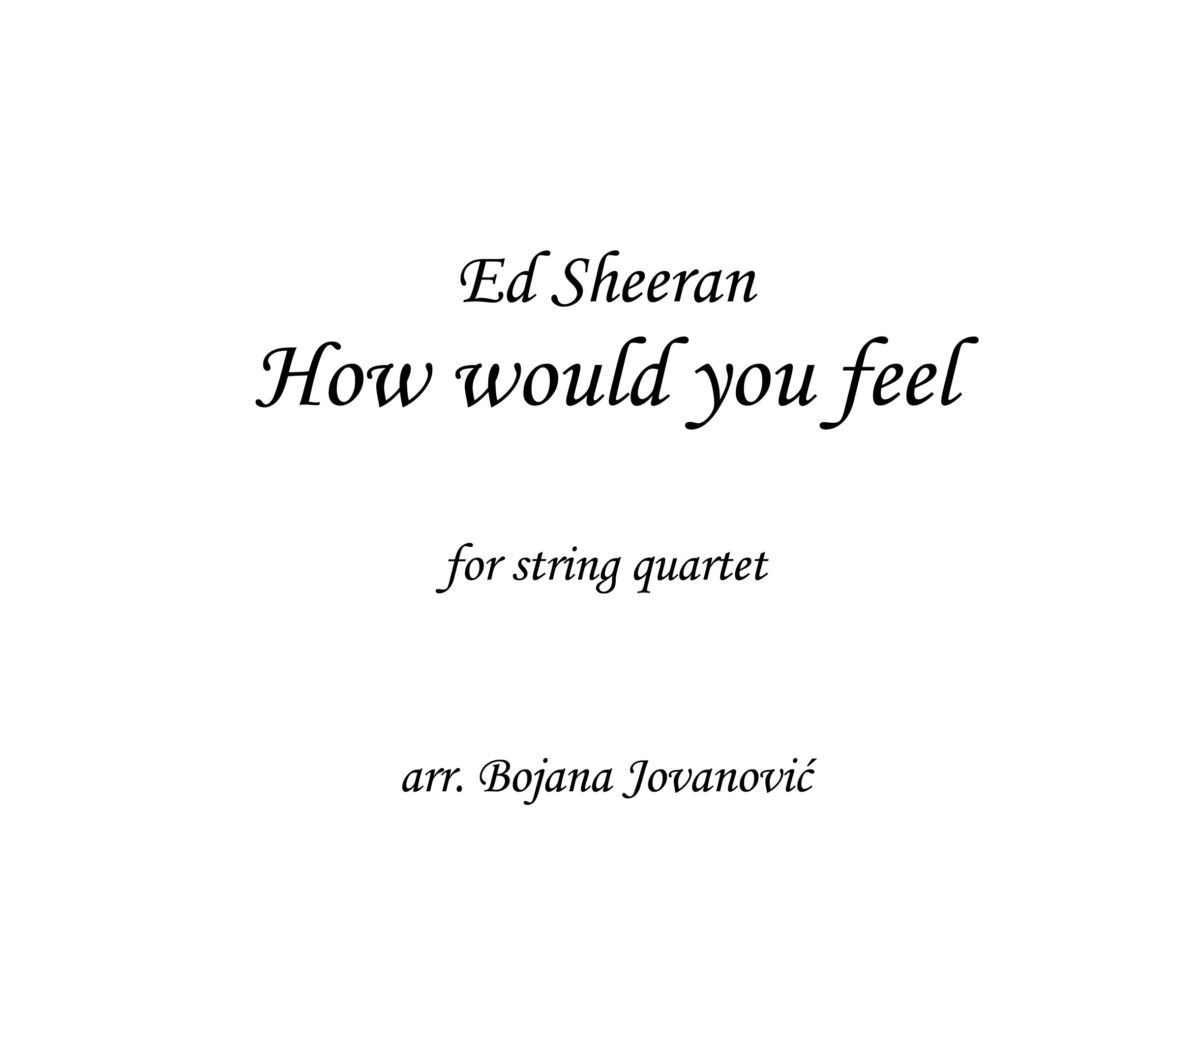 How would you feel Ed Sheeran Sheet music